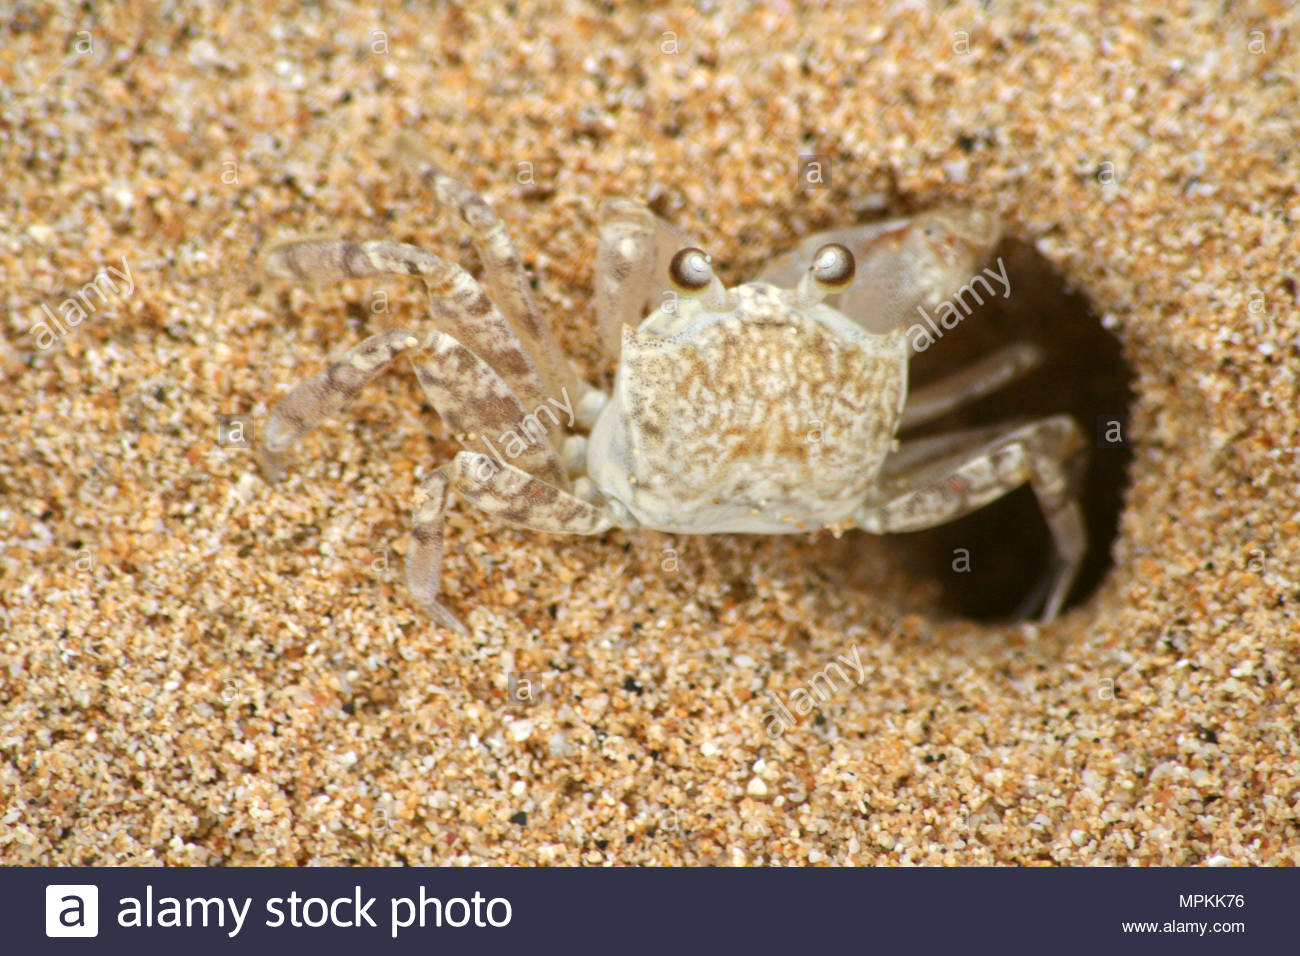 A Hawaiian crab (Lybia) also known as the boxer crab or pom-pom crab coming out of a hole in the sand on a beach. - Stock Image